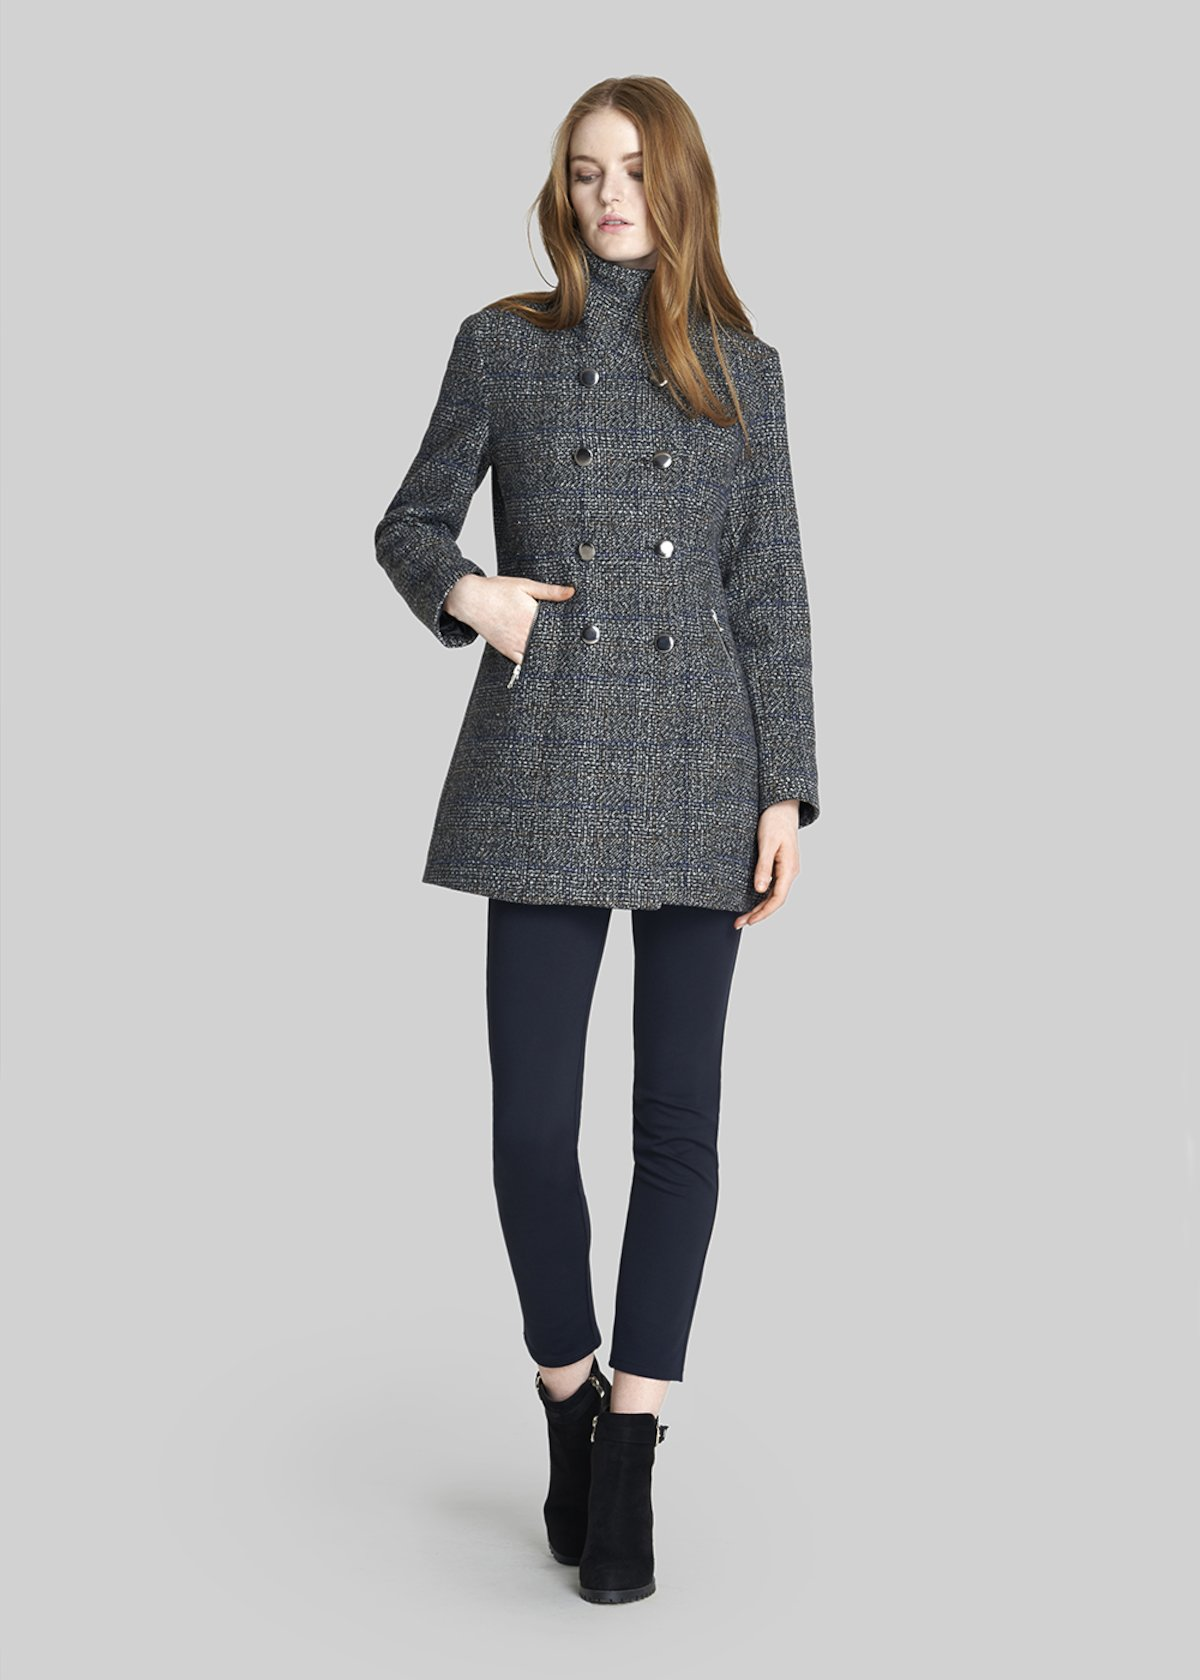 Clod coat elixir model with double breast and high collar